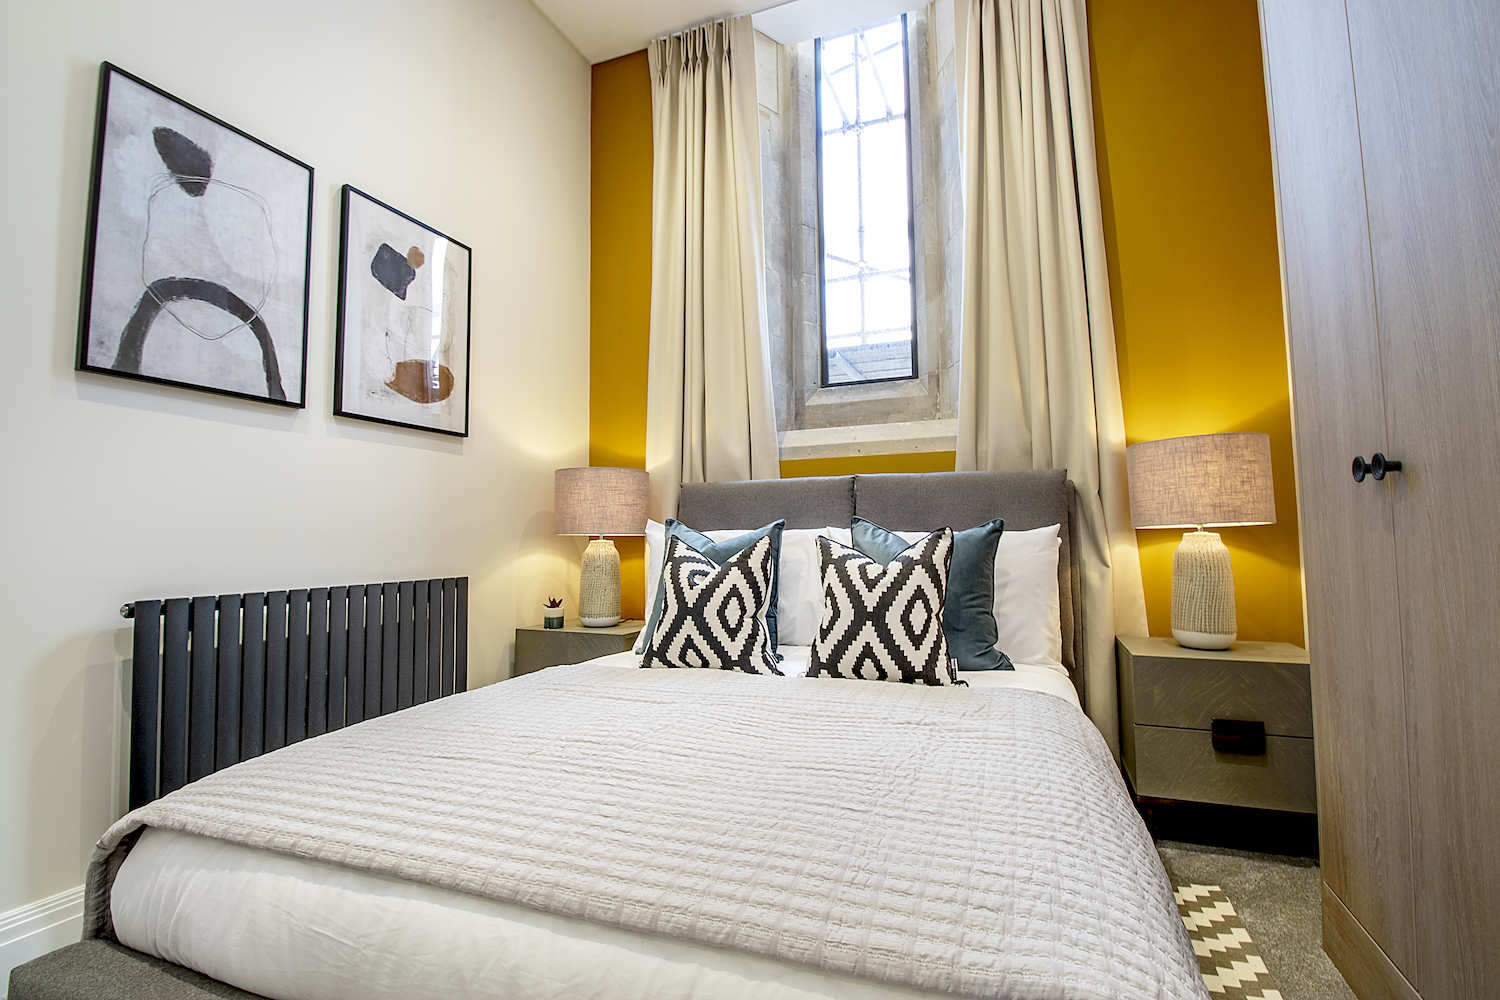 Home for sale in North London with 3 bedrooms